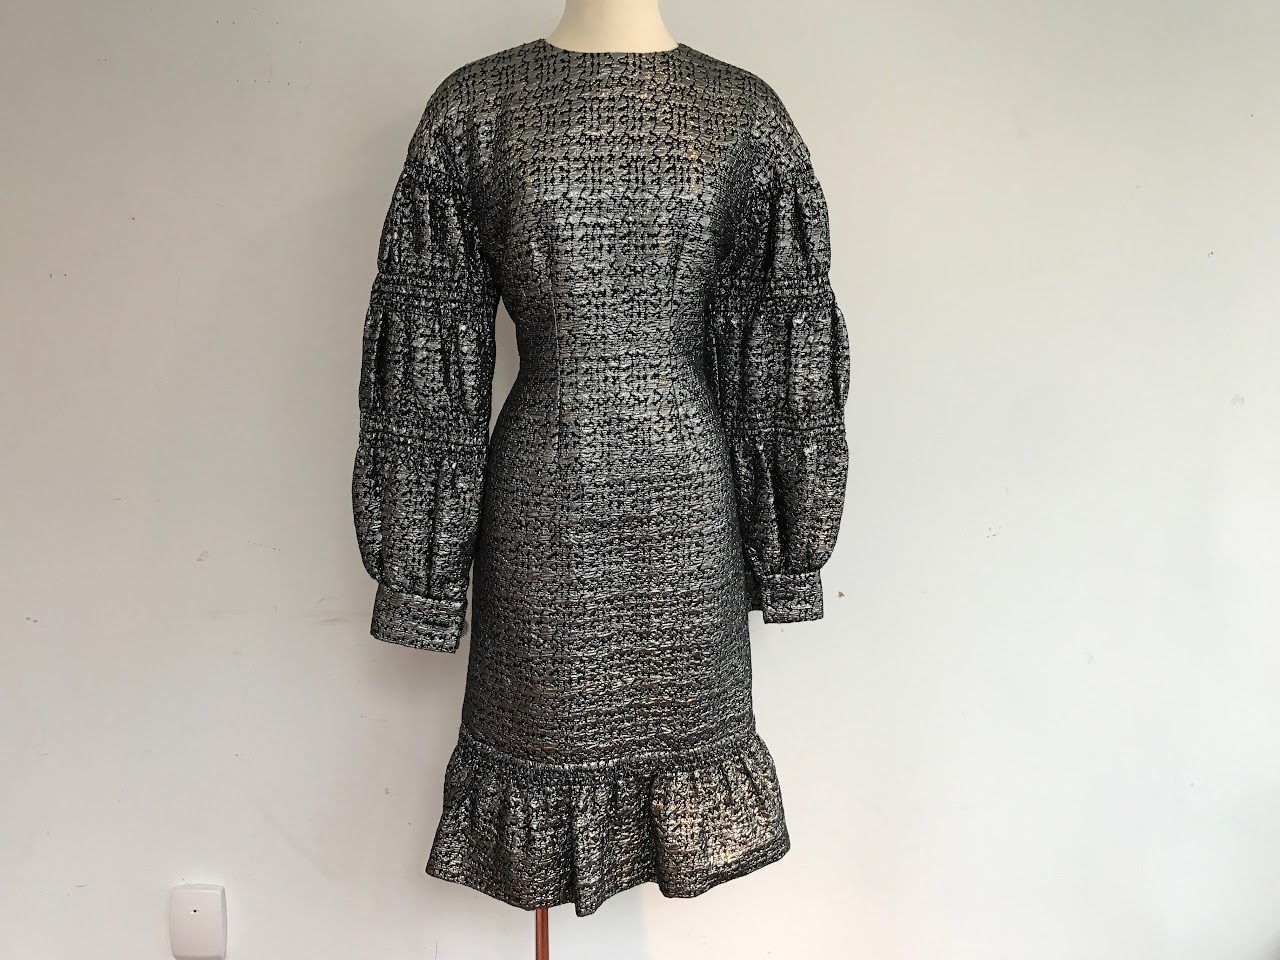 Galanos Metallic Cocktail Dress